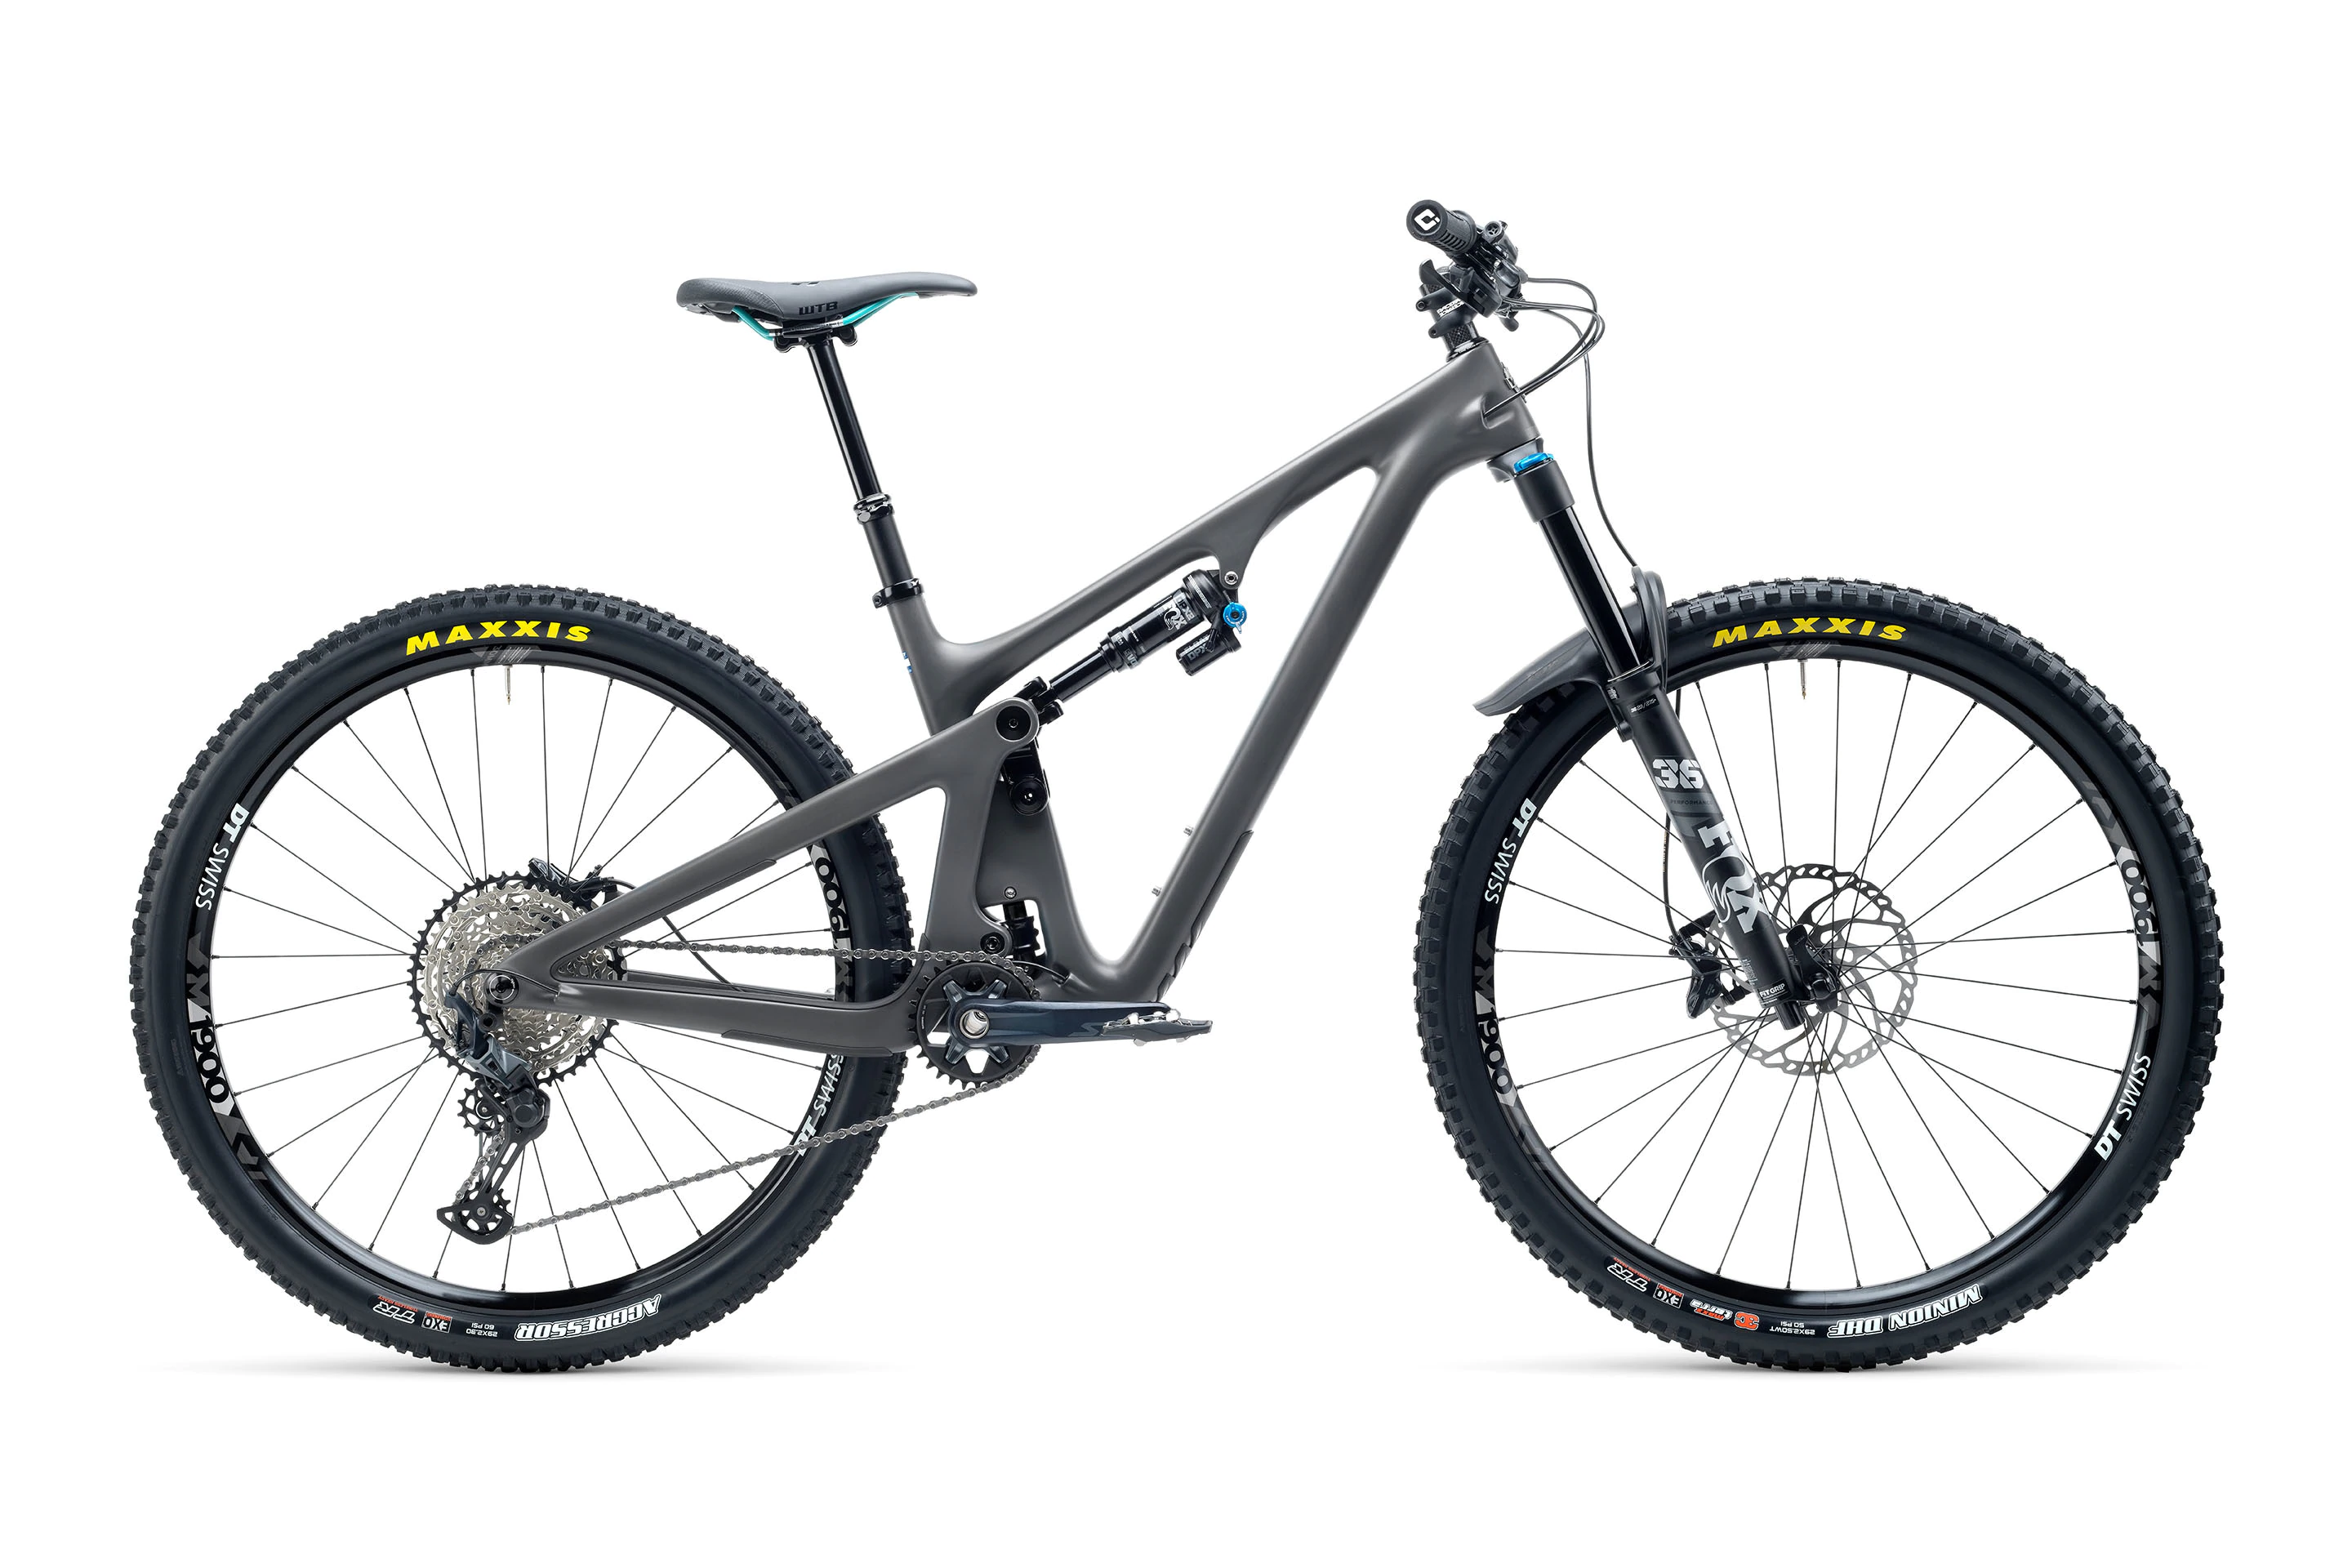 Yeti SB130 C2 Series GX Eagle 12spd Carbon Mountain Bike 2021 Raw/Grey